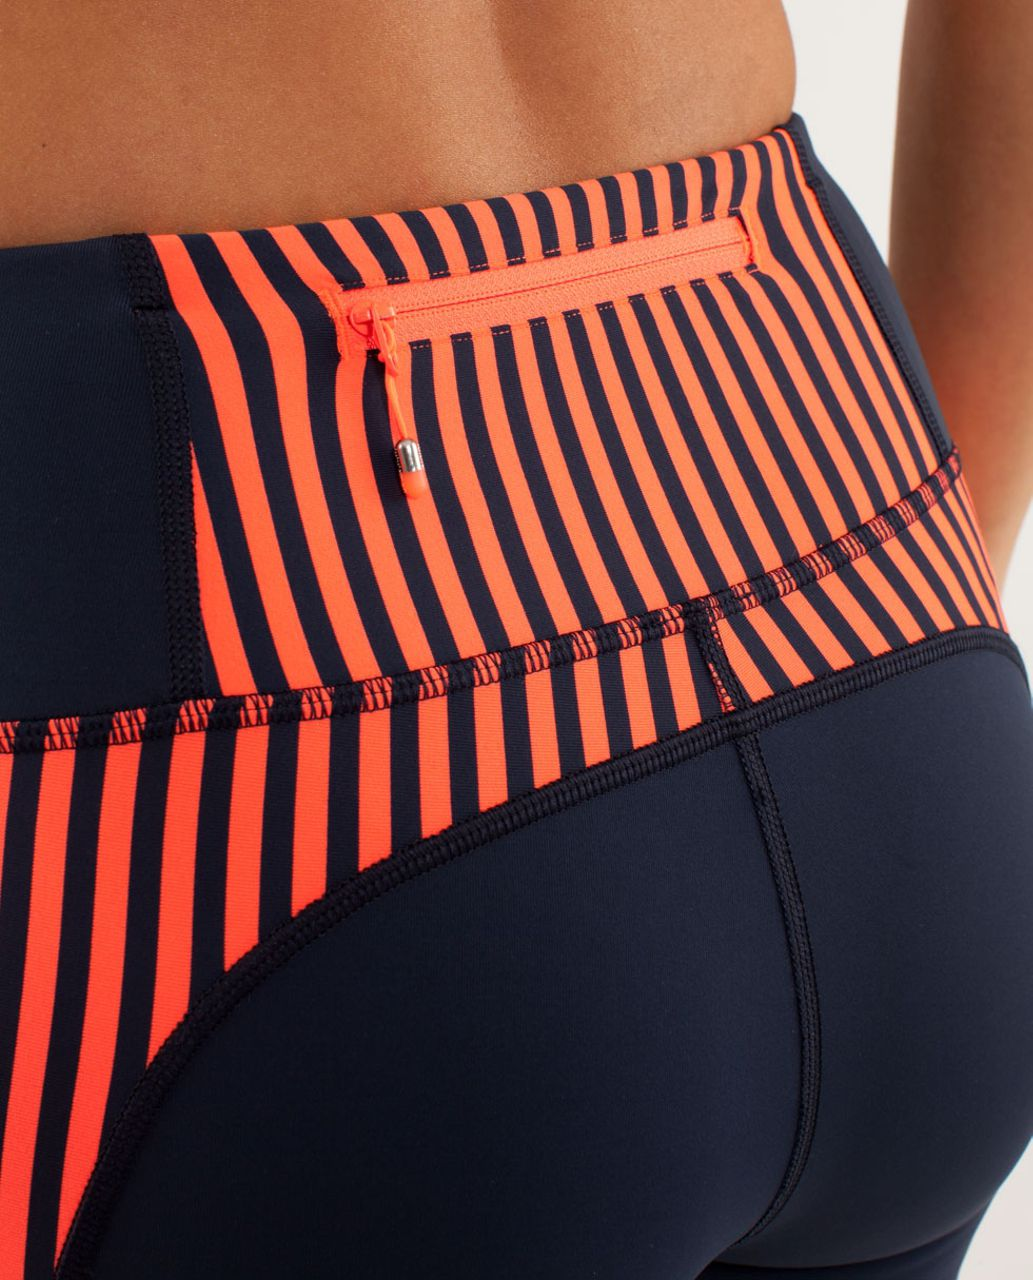 Lululemon Run:  Get Up And Glow Tight - Inkwell / Classic Stripe Light Flare Inkwell / Inkwell